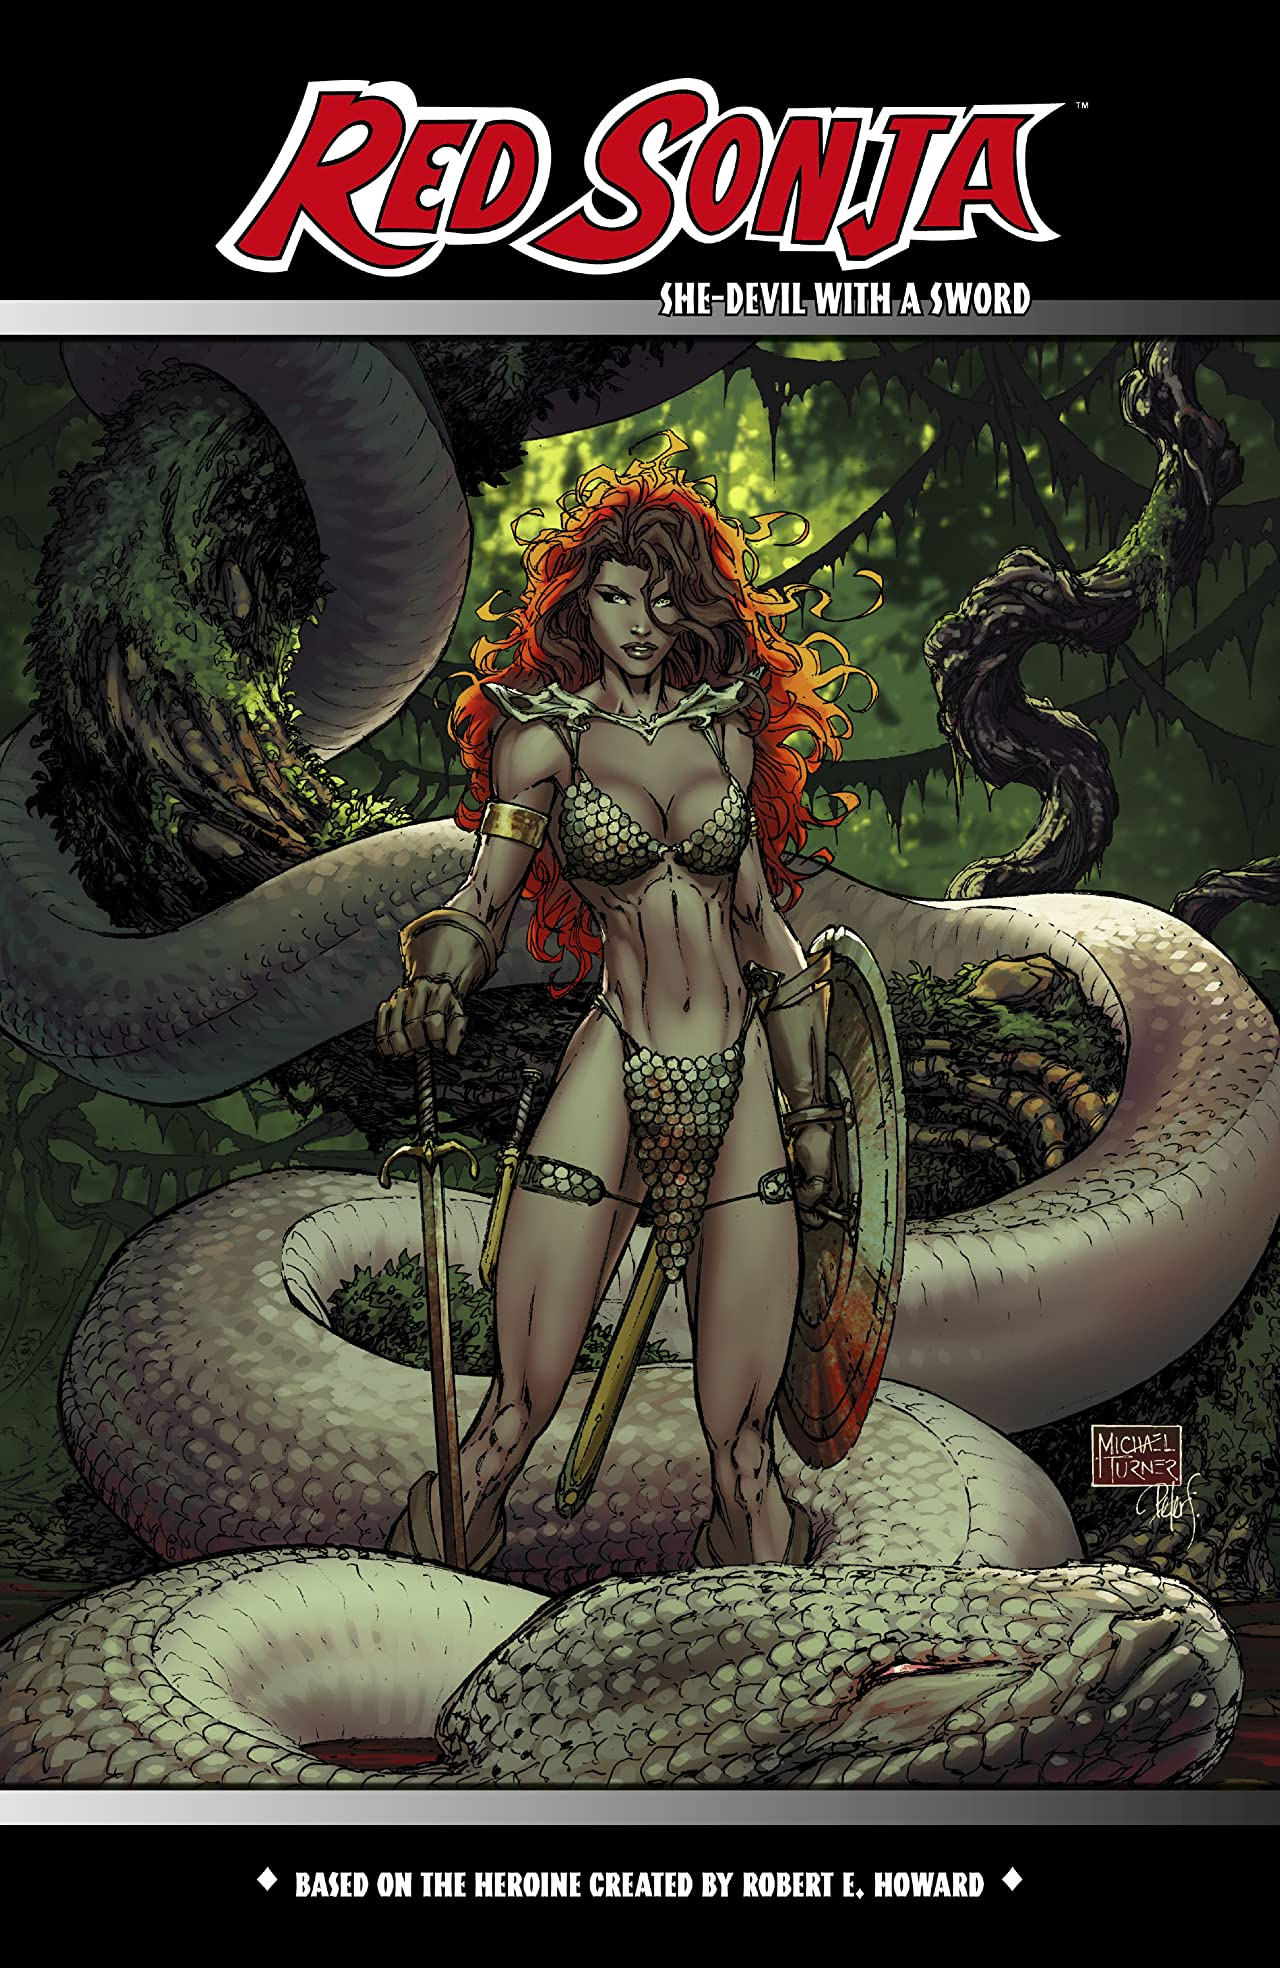 Red Sonja: She-Devil With a Sword Vol. 1